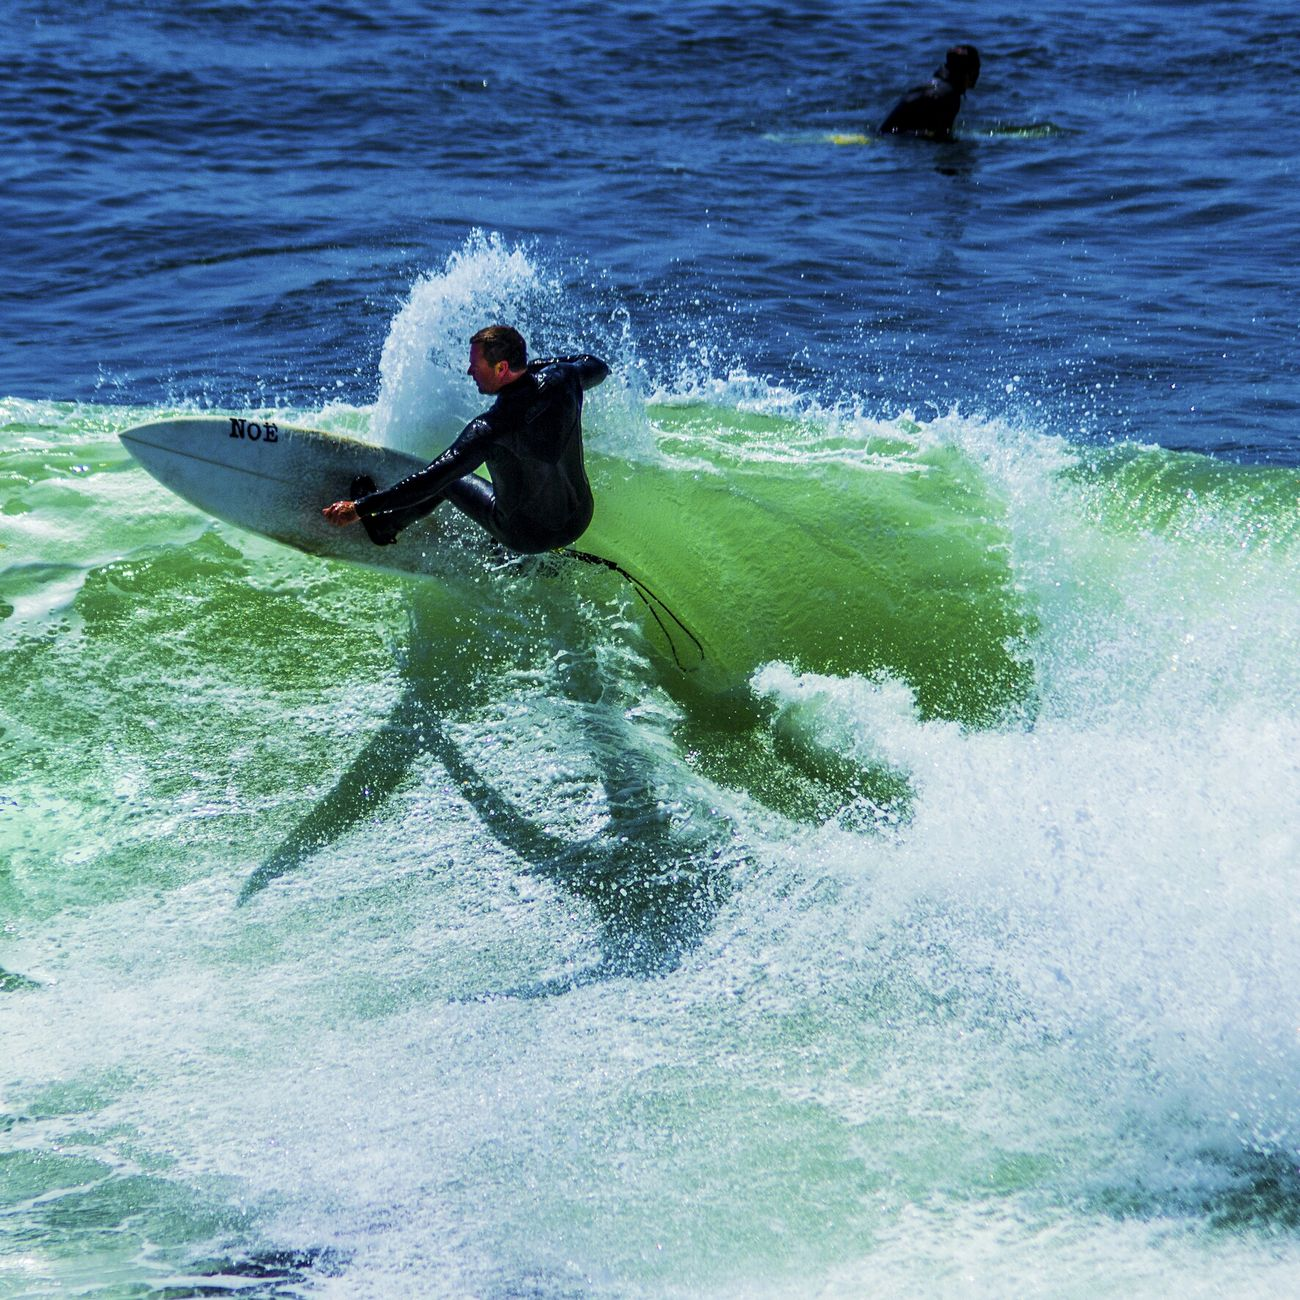 My photography. Surfer in Santa Cruz. DSLR EyeEm Best Shots Surfing Eye4photography  EyeEmBestEdits